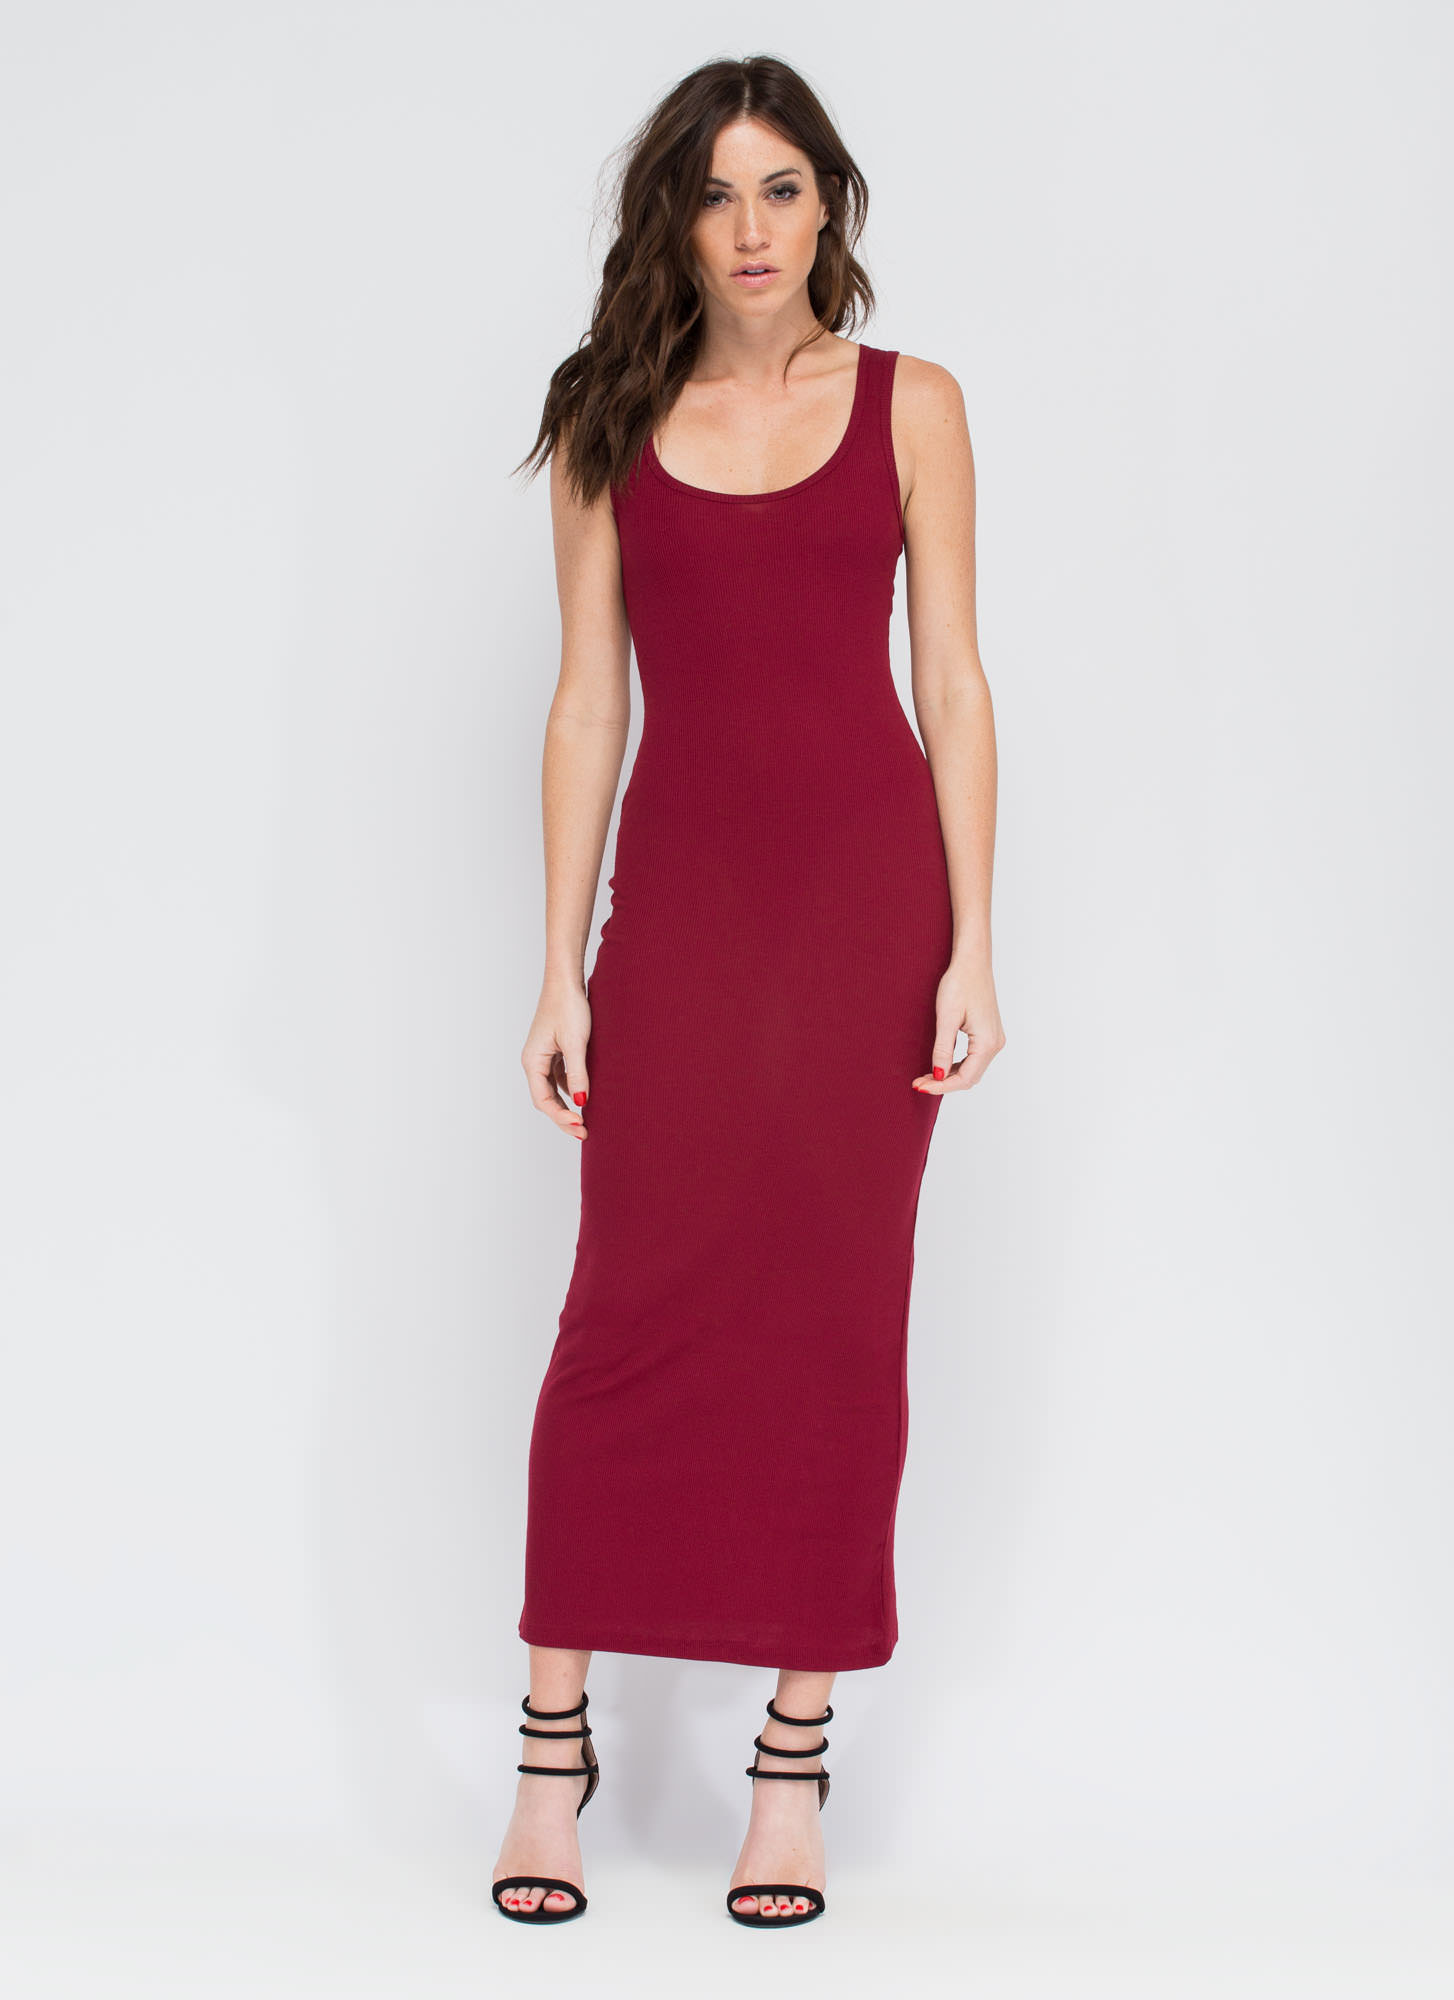 Bring On The Basic Ribbed Maxi Dress BURGUNDY